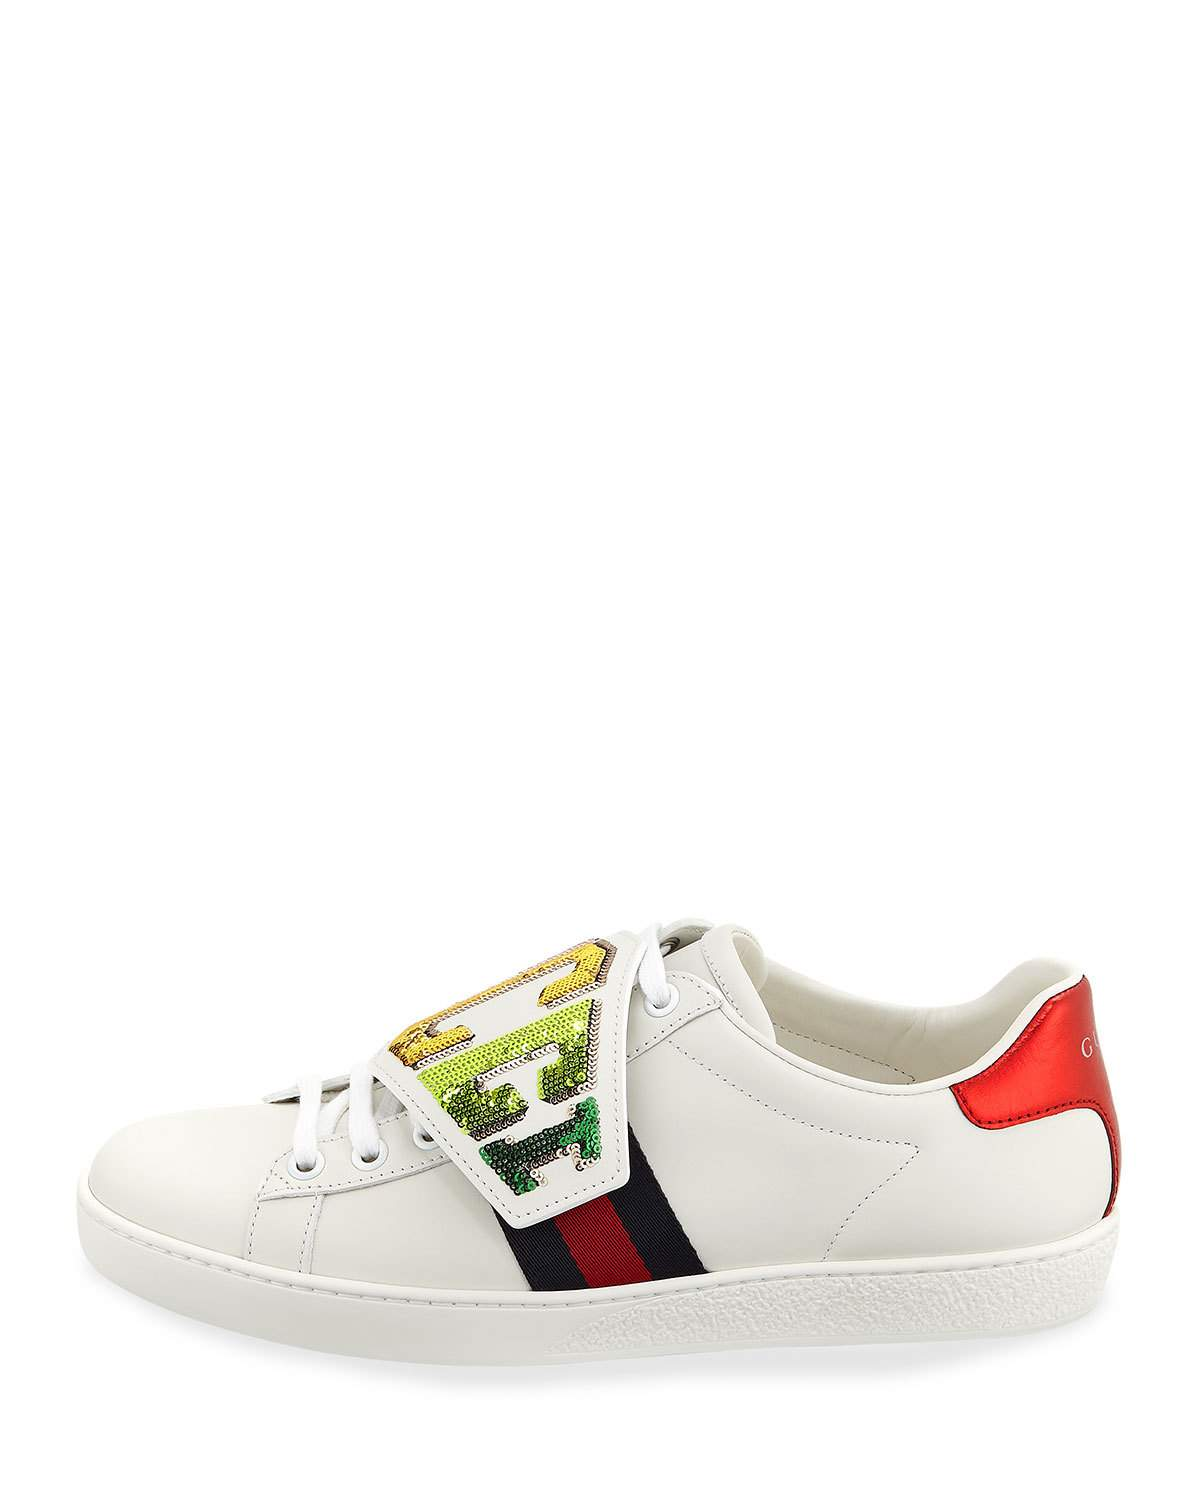 fbc19fa69 Gucci New Ace Rainbow Gucci Patch Leather Sneaker   Products ...